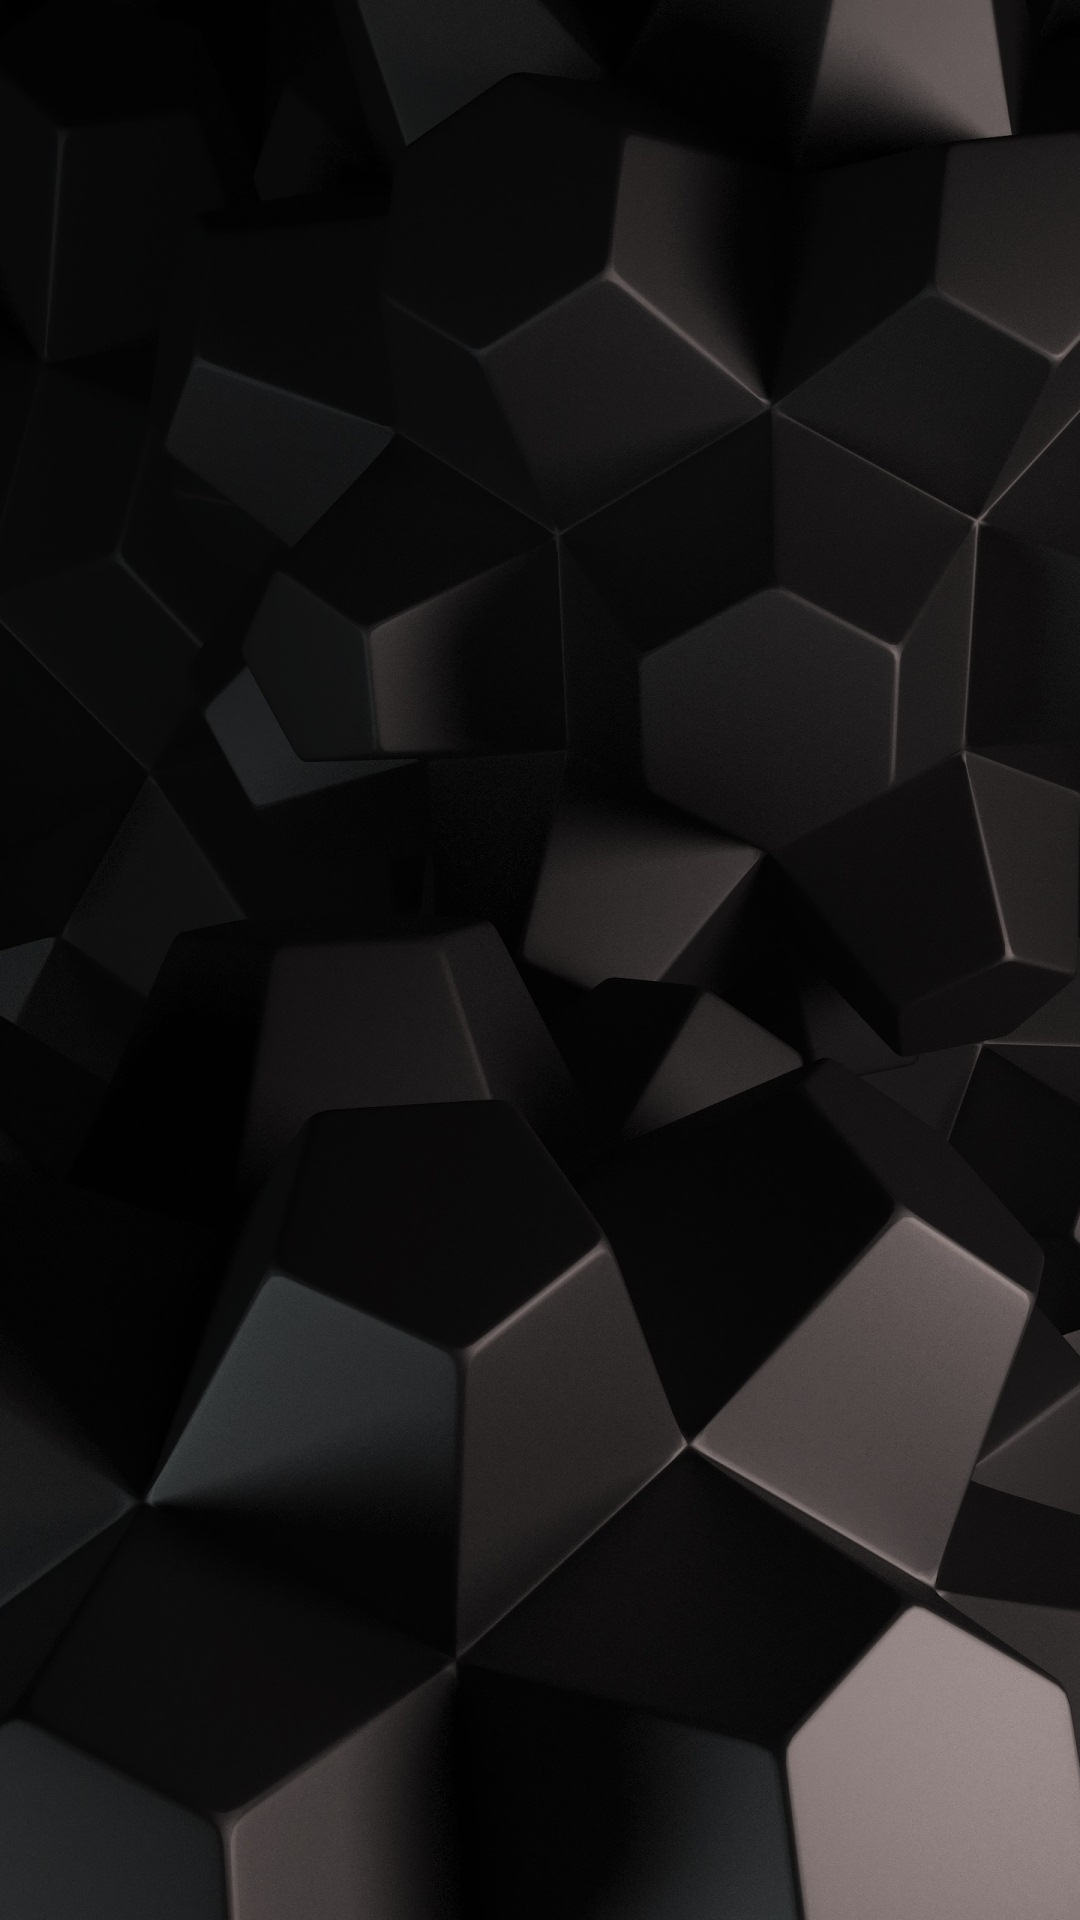 Free Download 45 Solid Black Iphone Wallpapers Wallpaperspit